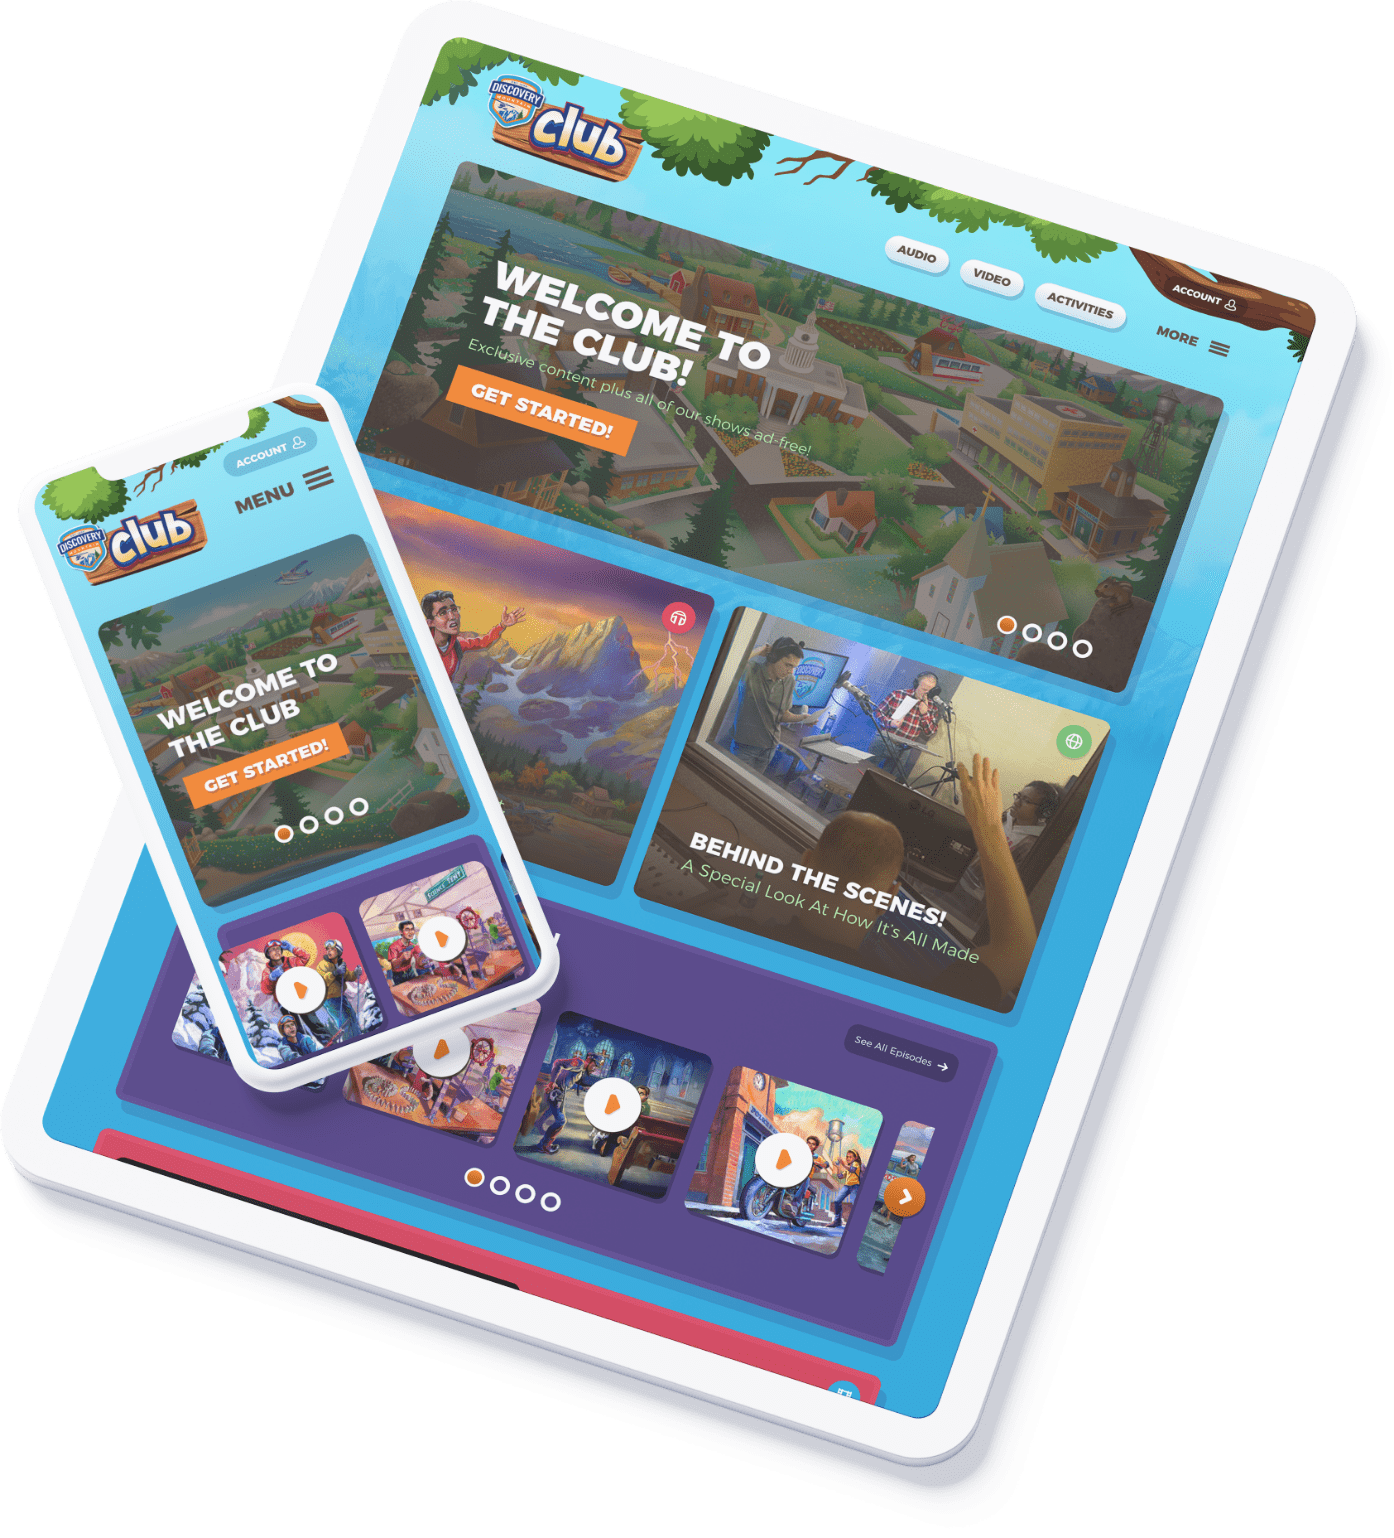 Discovery Mountain Club displayed on an iPad and iPhone